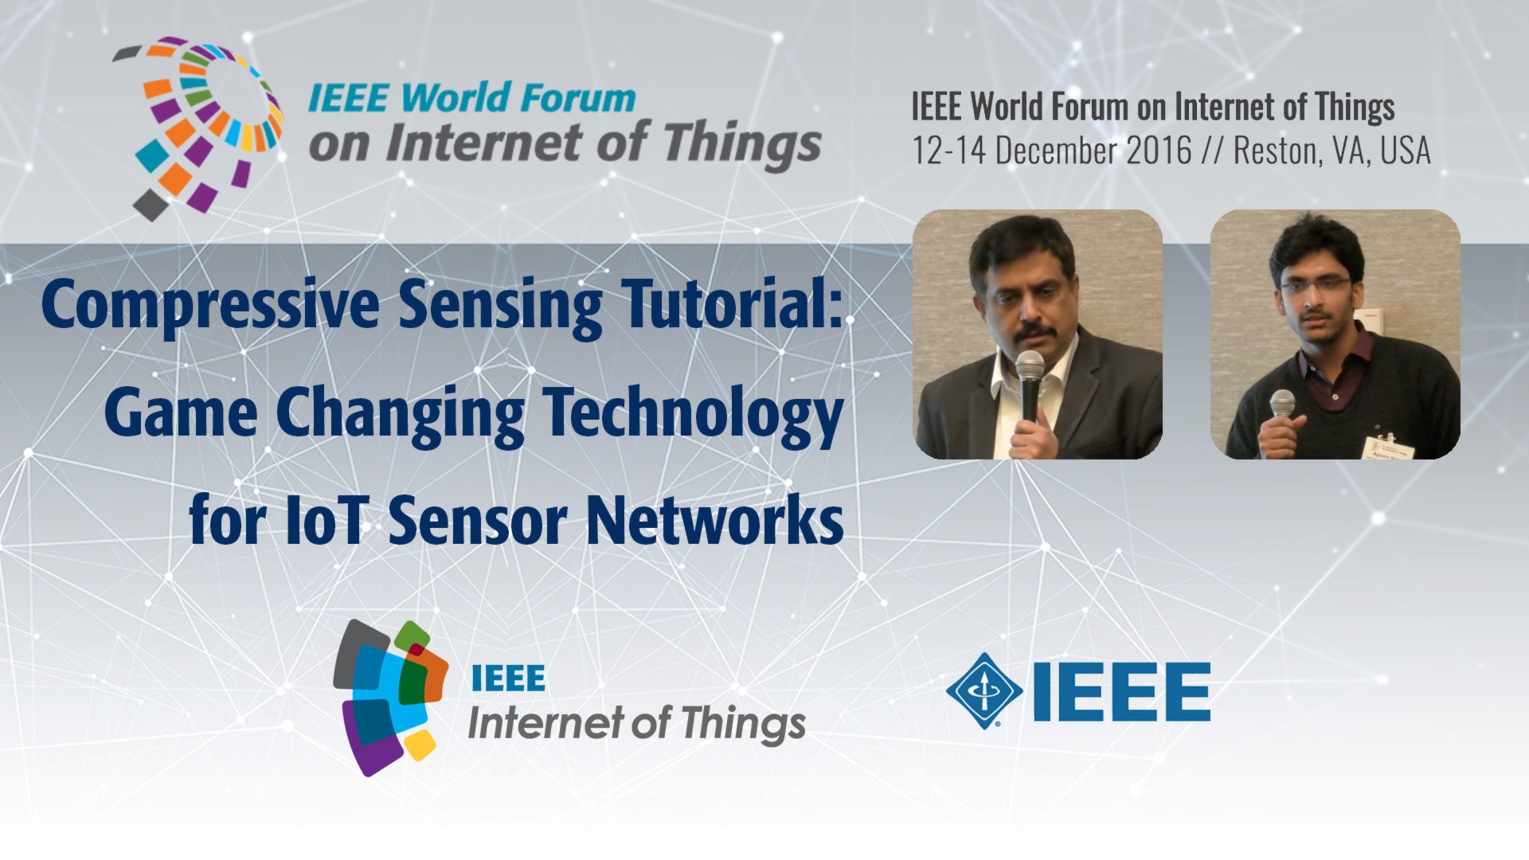 Compressive Sensing Tutorial: A Game Changing Technology for Energy Efficient IoT Sensor Networks: WF-IoT 2016